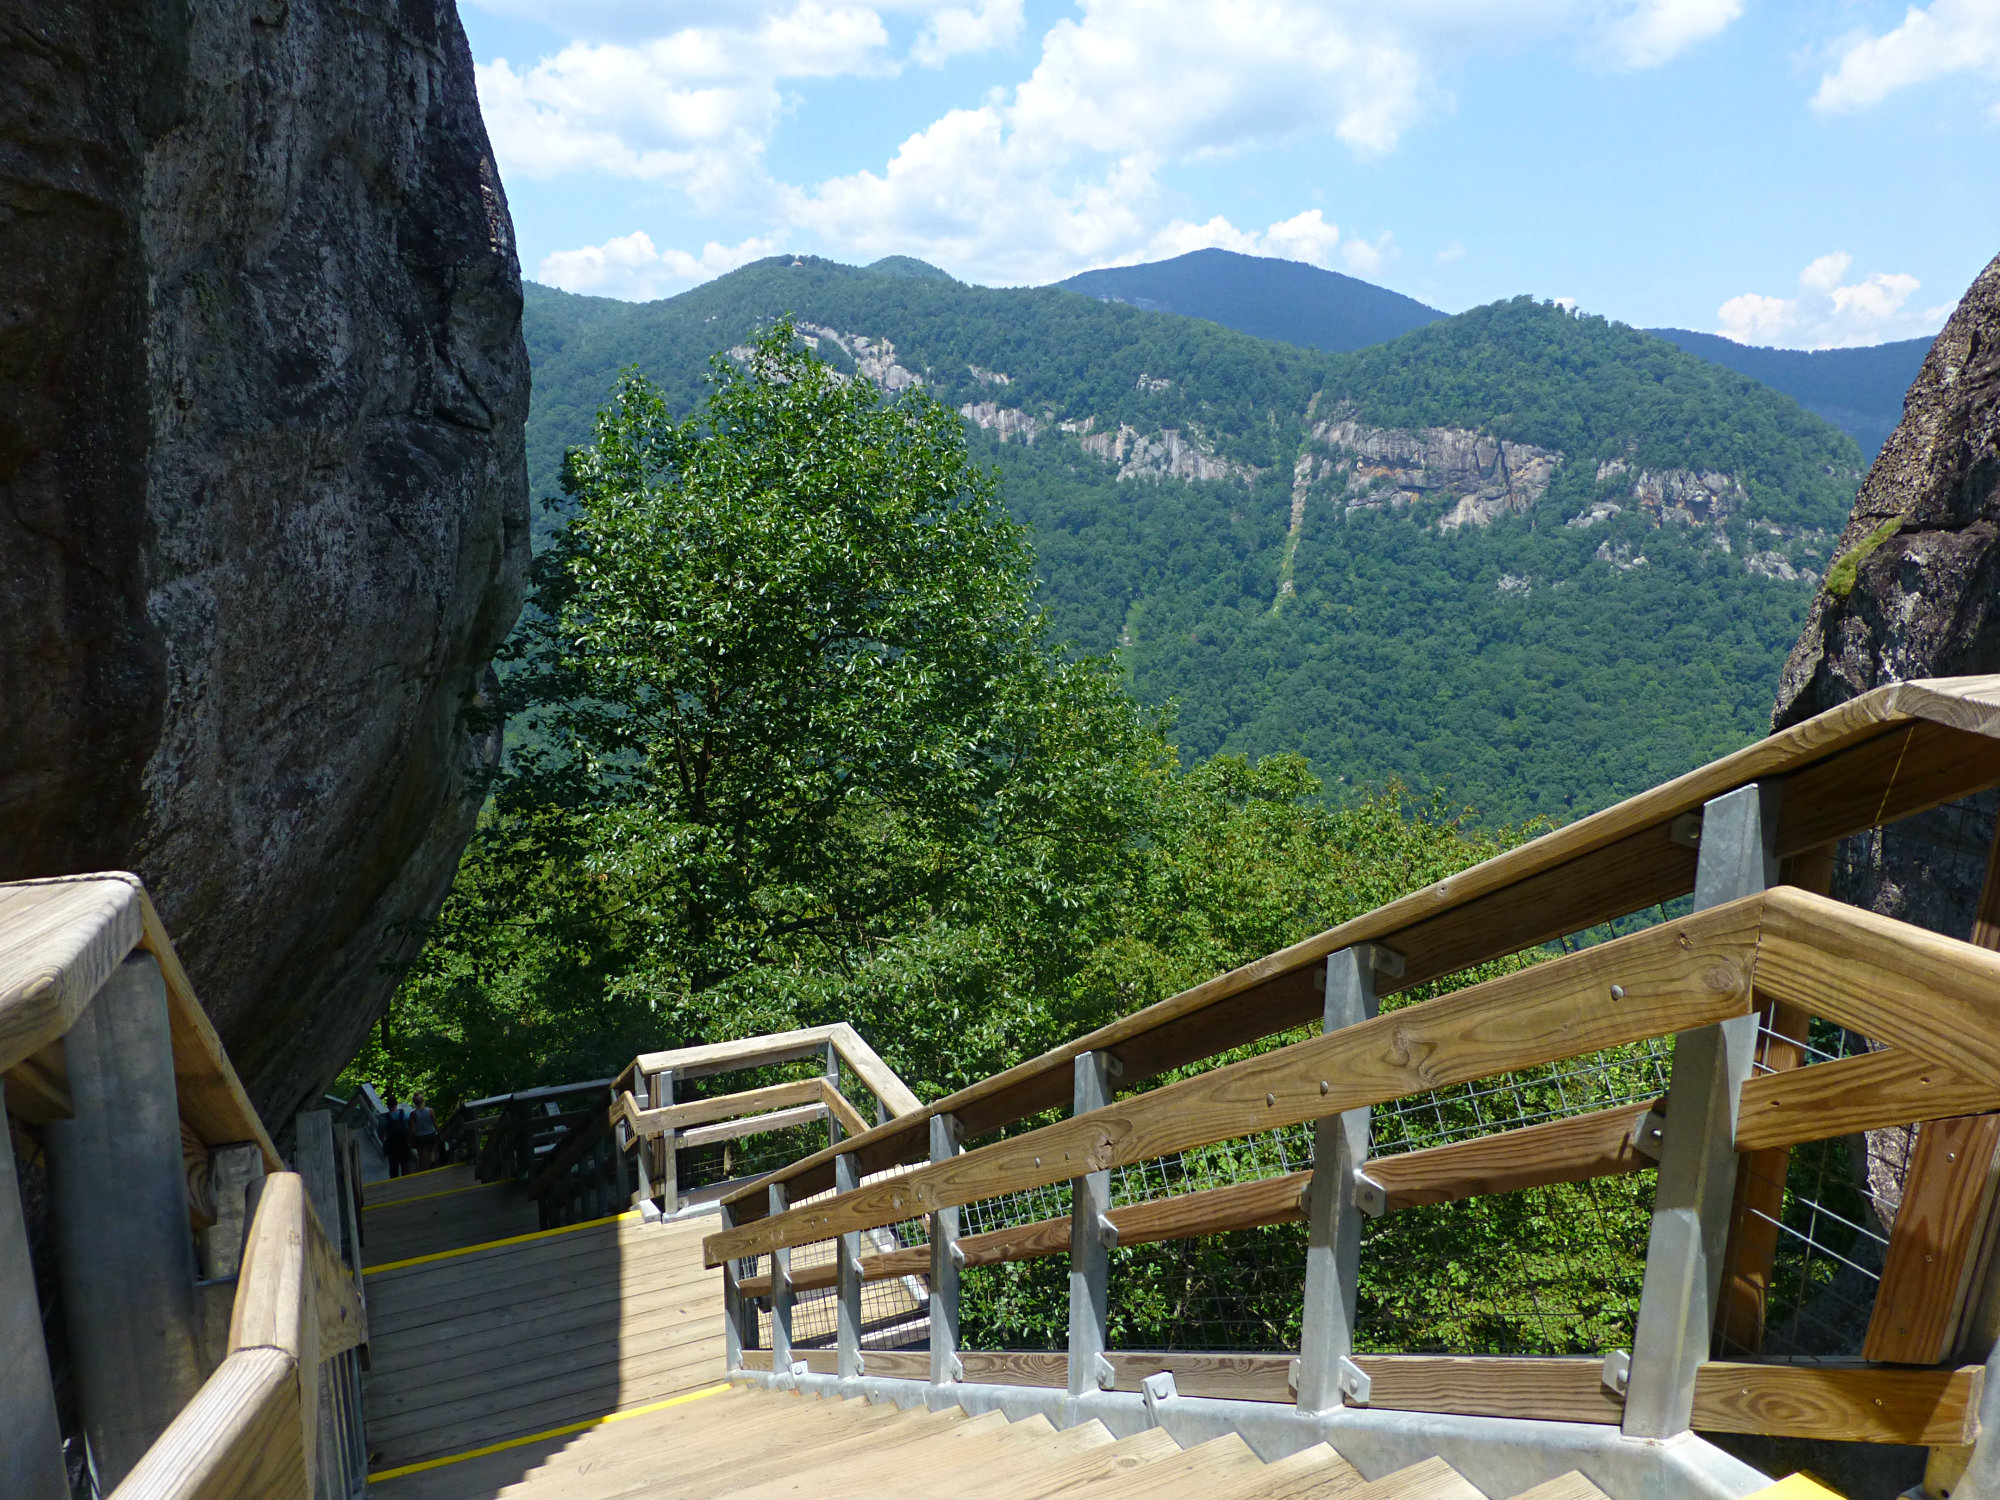 View from wooden stairway across a mountainous tree-filled landscape